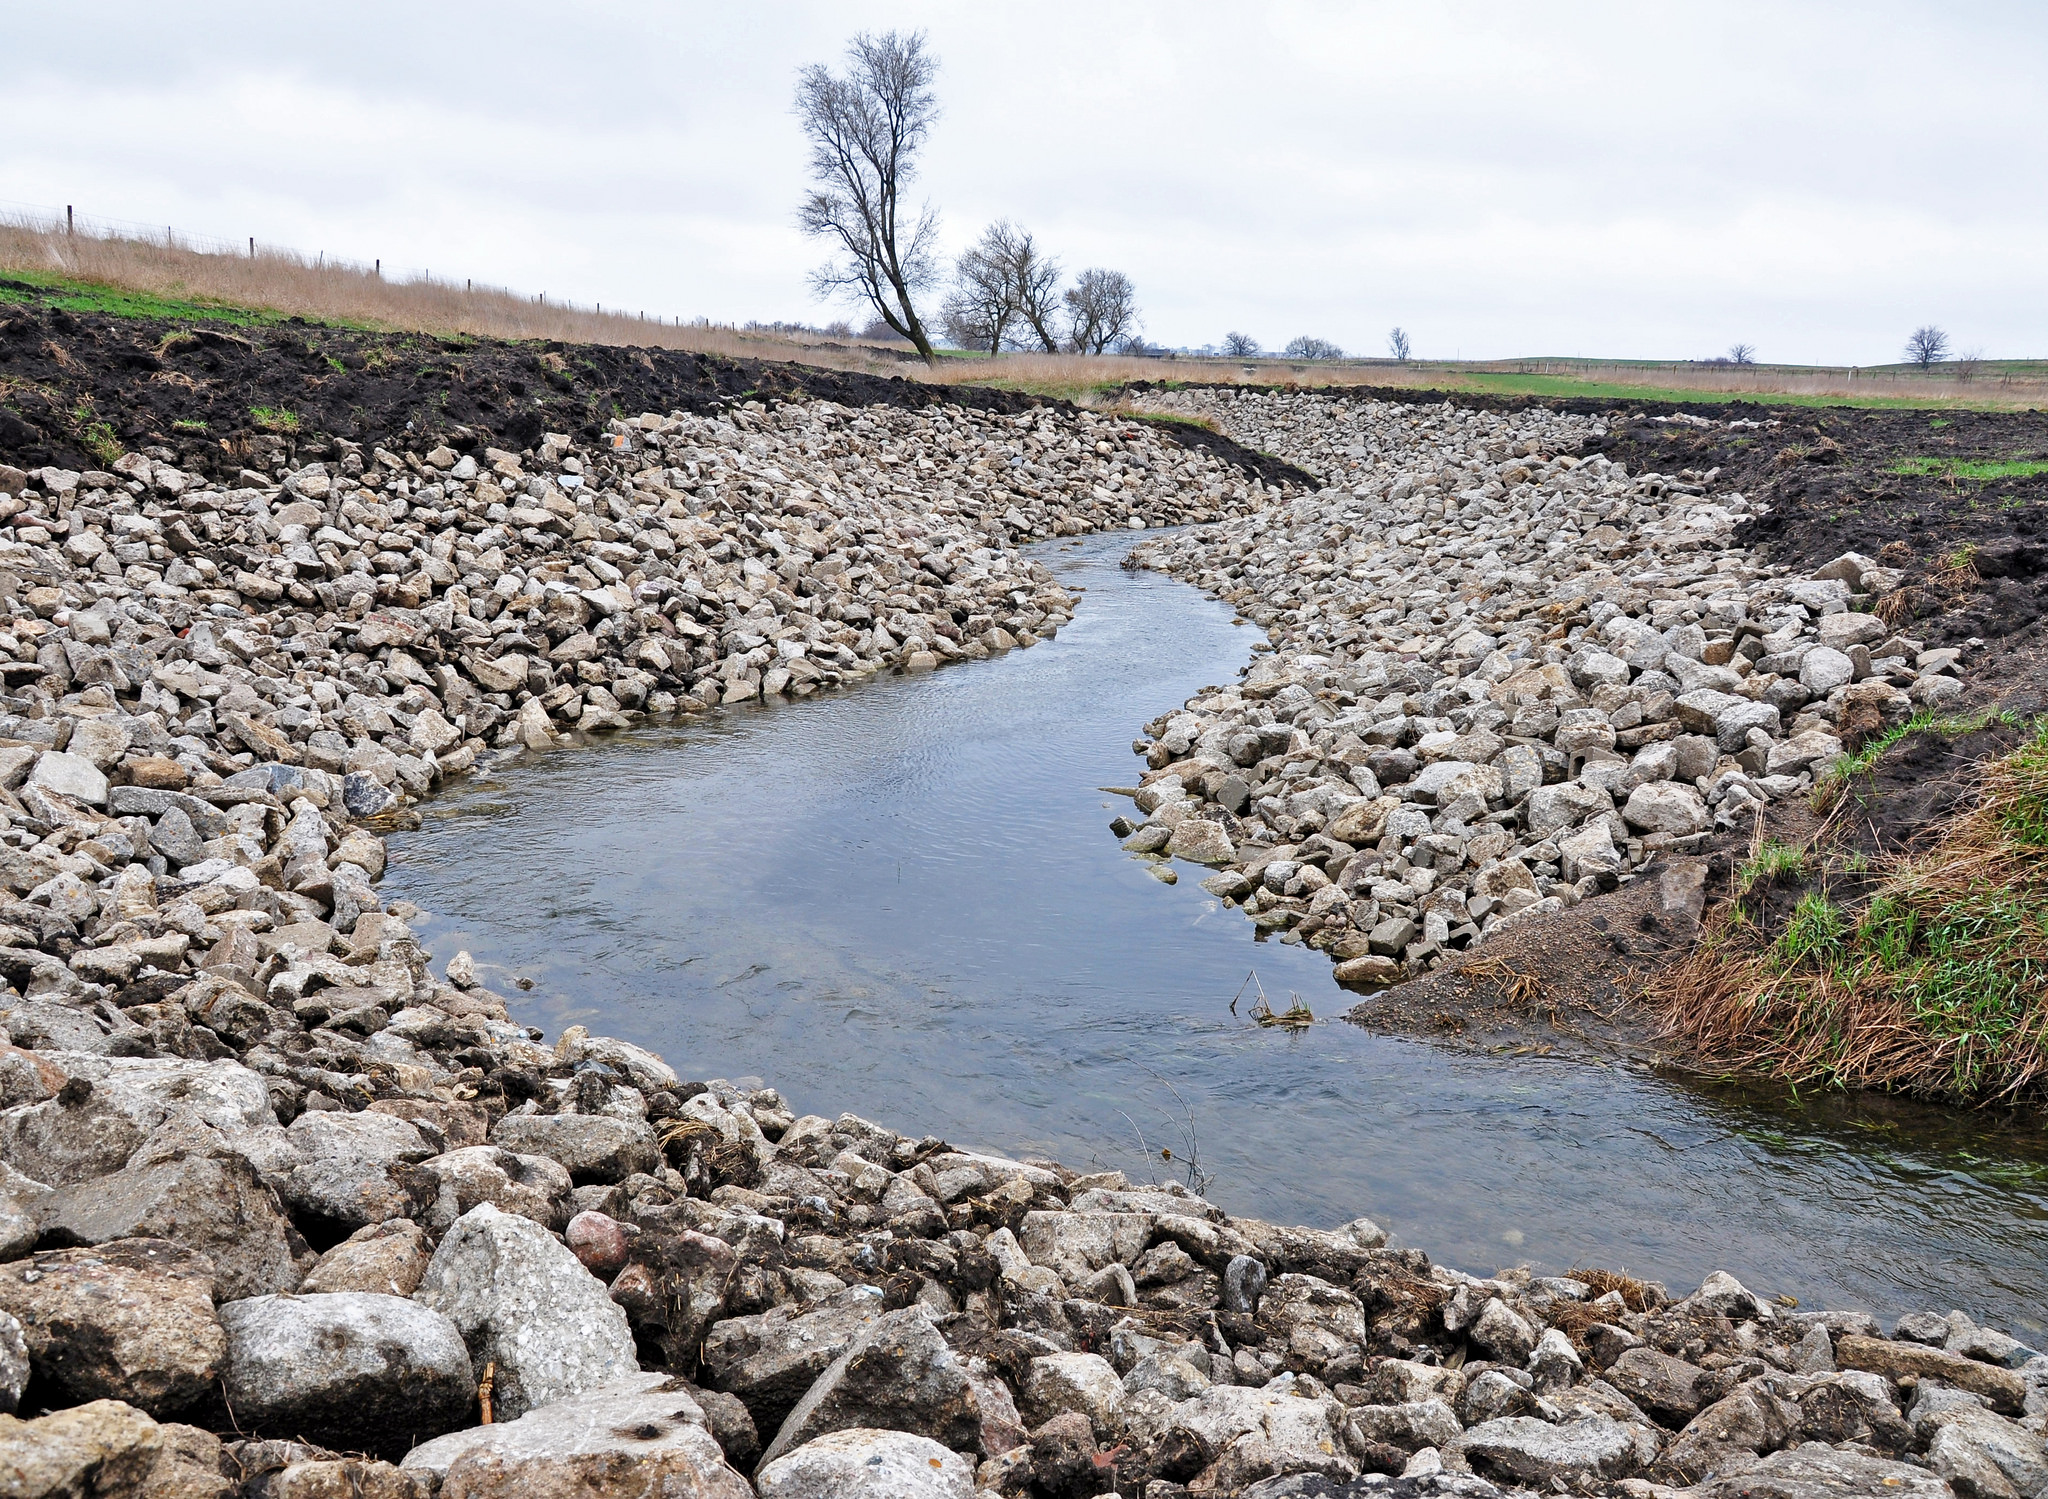 A newly completed stream bank stabilization project near Black Hawk Lake in Sac County uses rip rap to hold key points of the stream bank in place.